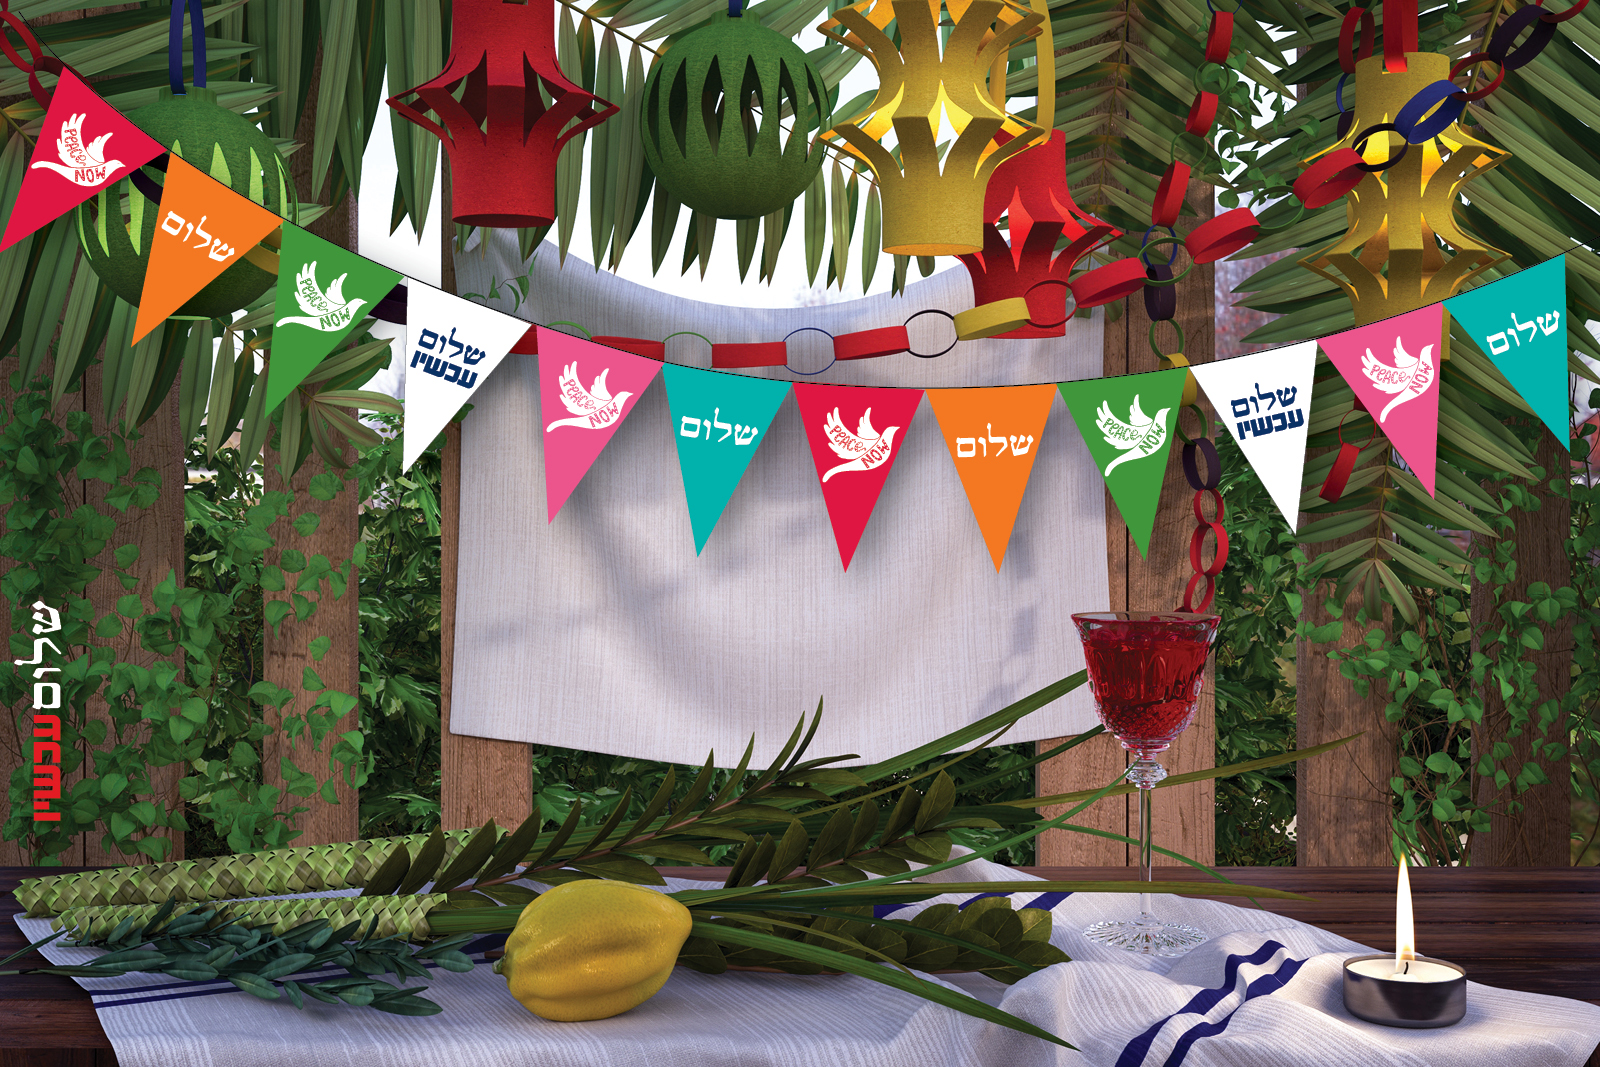 Order your peace bunting decoration for Sukkot!